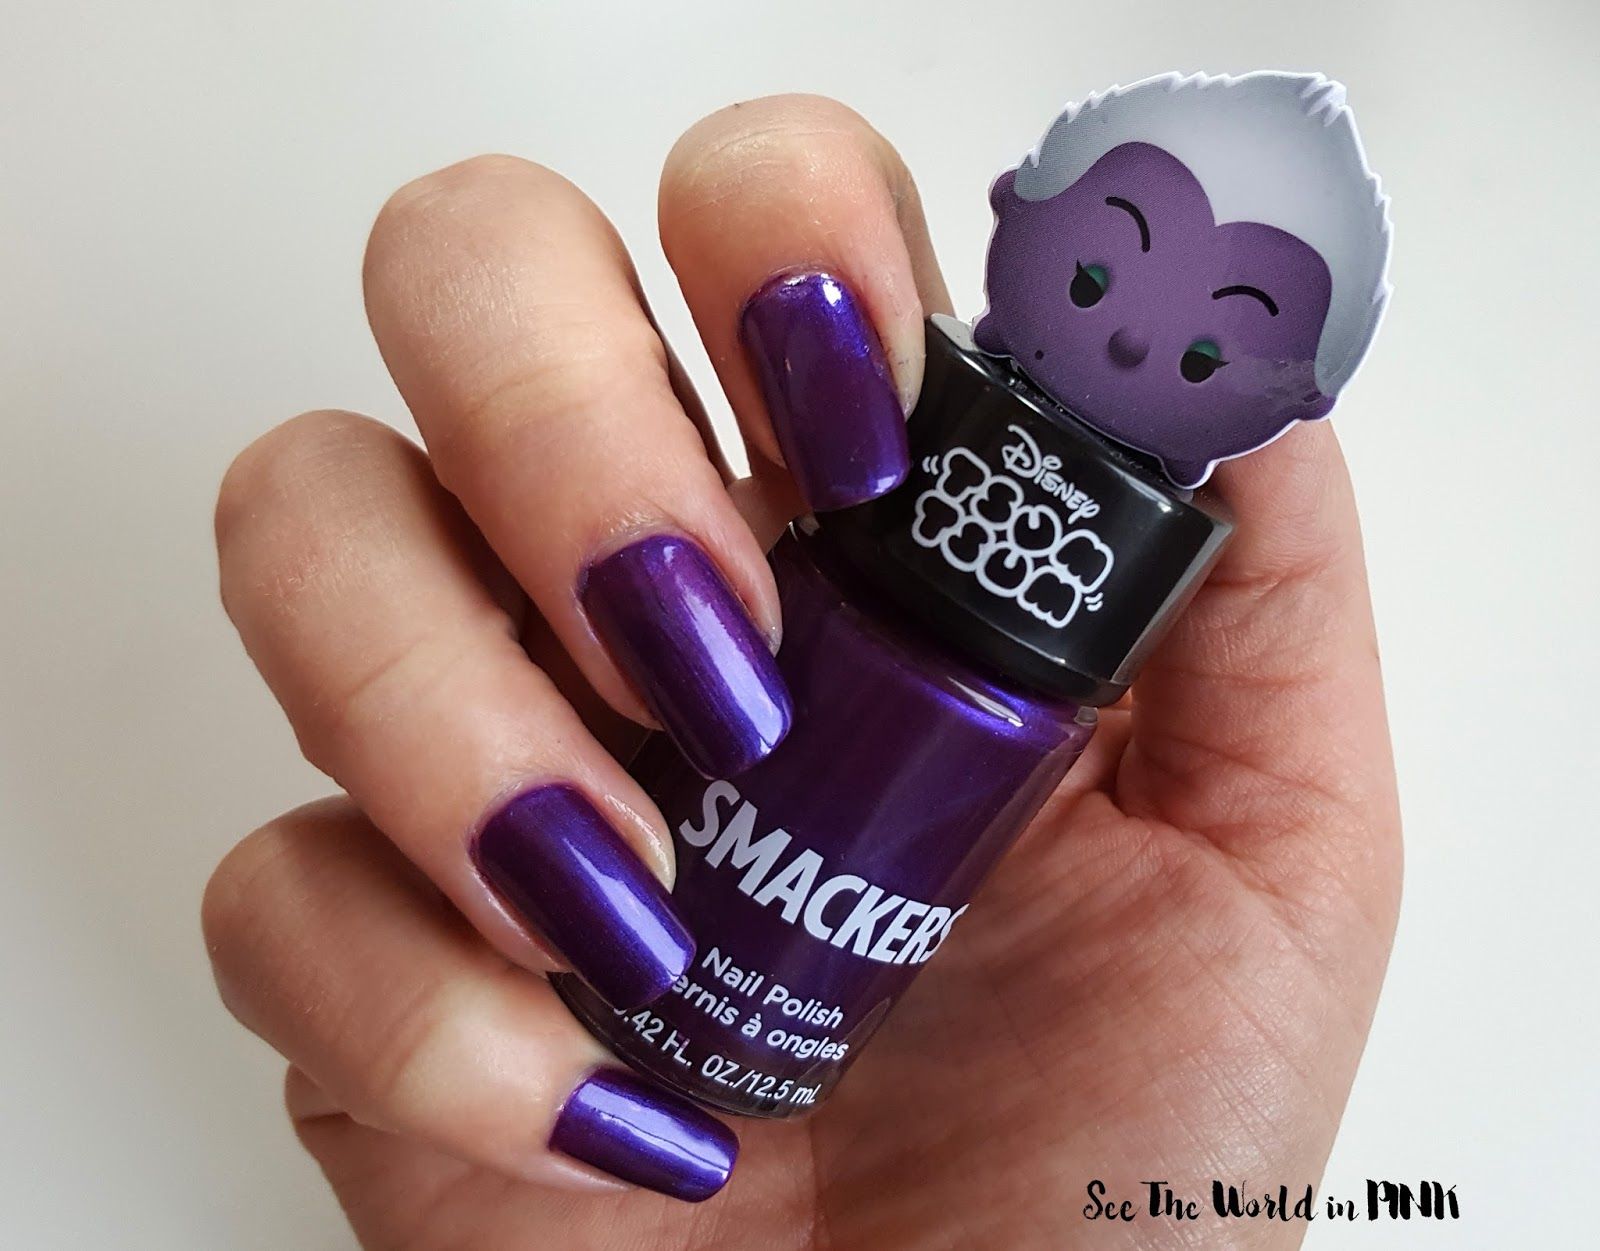 Manicure Tuesday - Lip Smacker Disney Tsum Tsum SMACKERS Halloween Nail Polish Collection